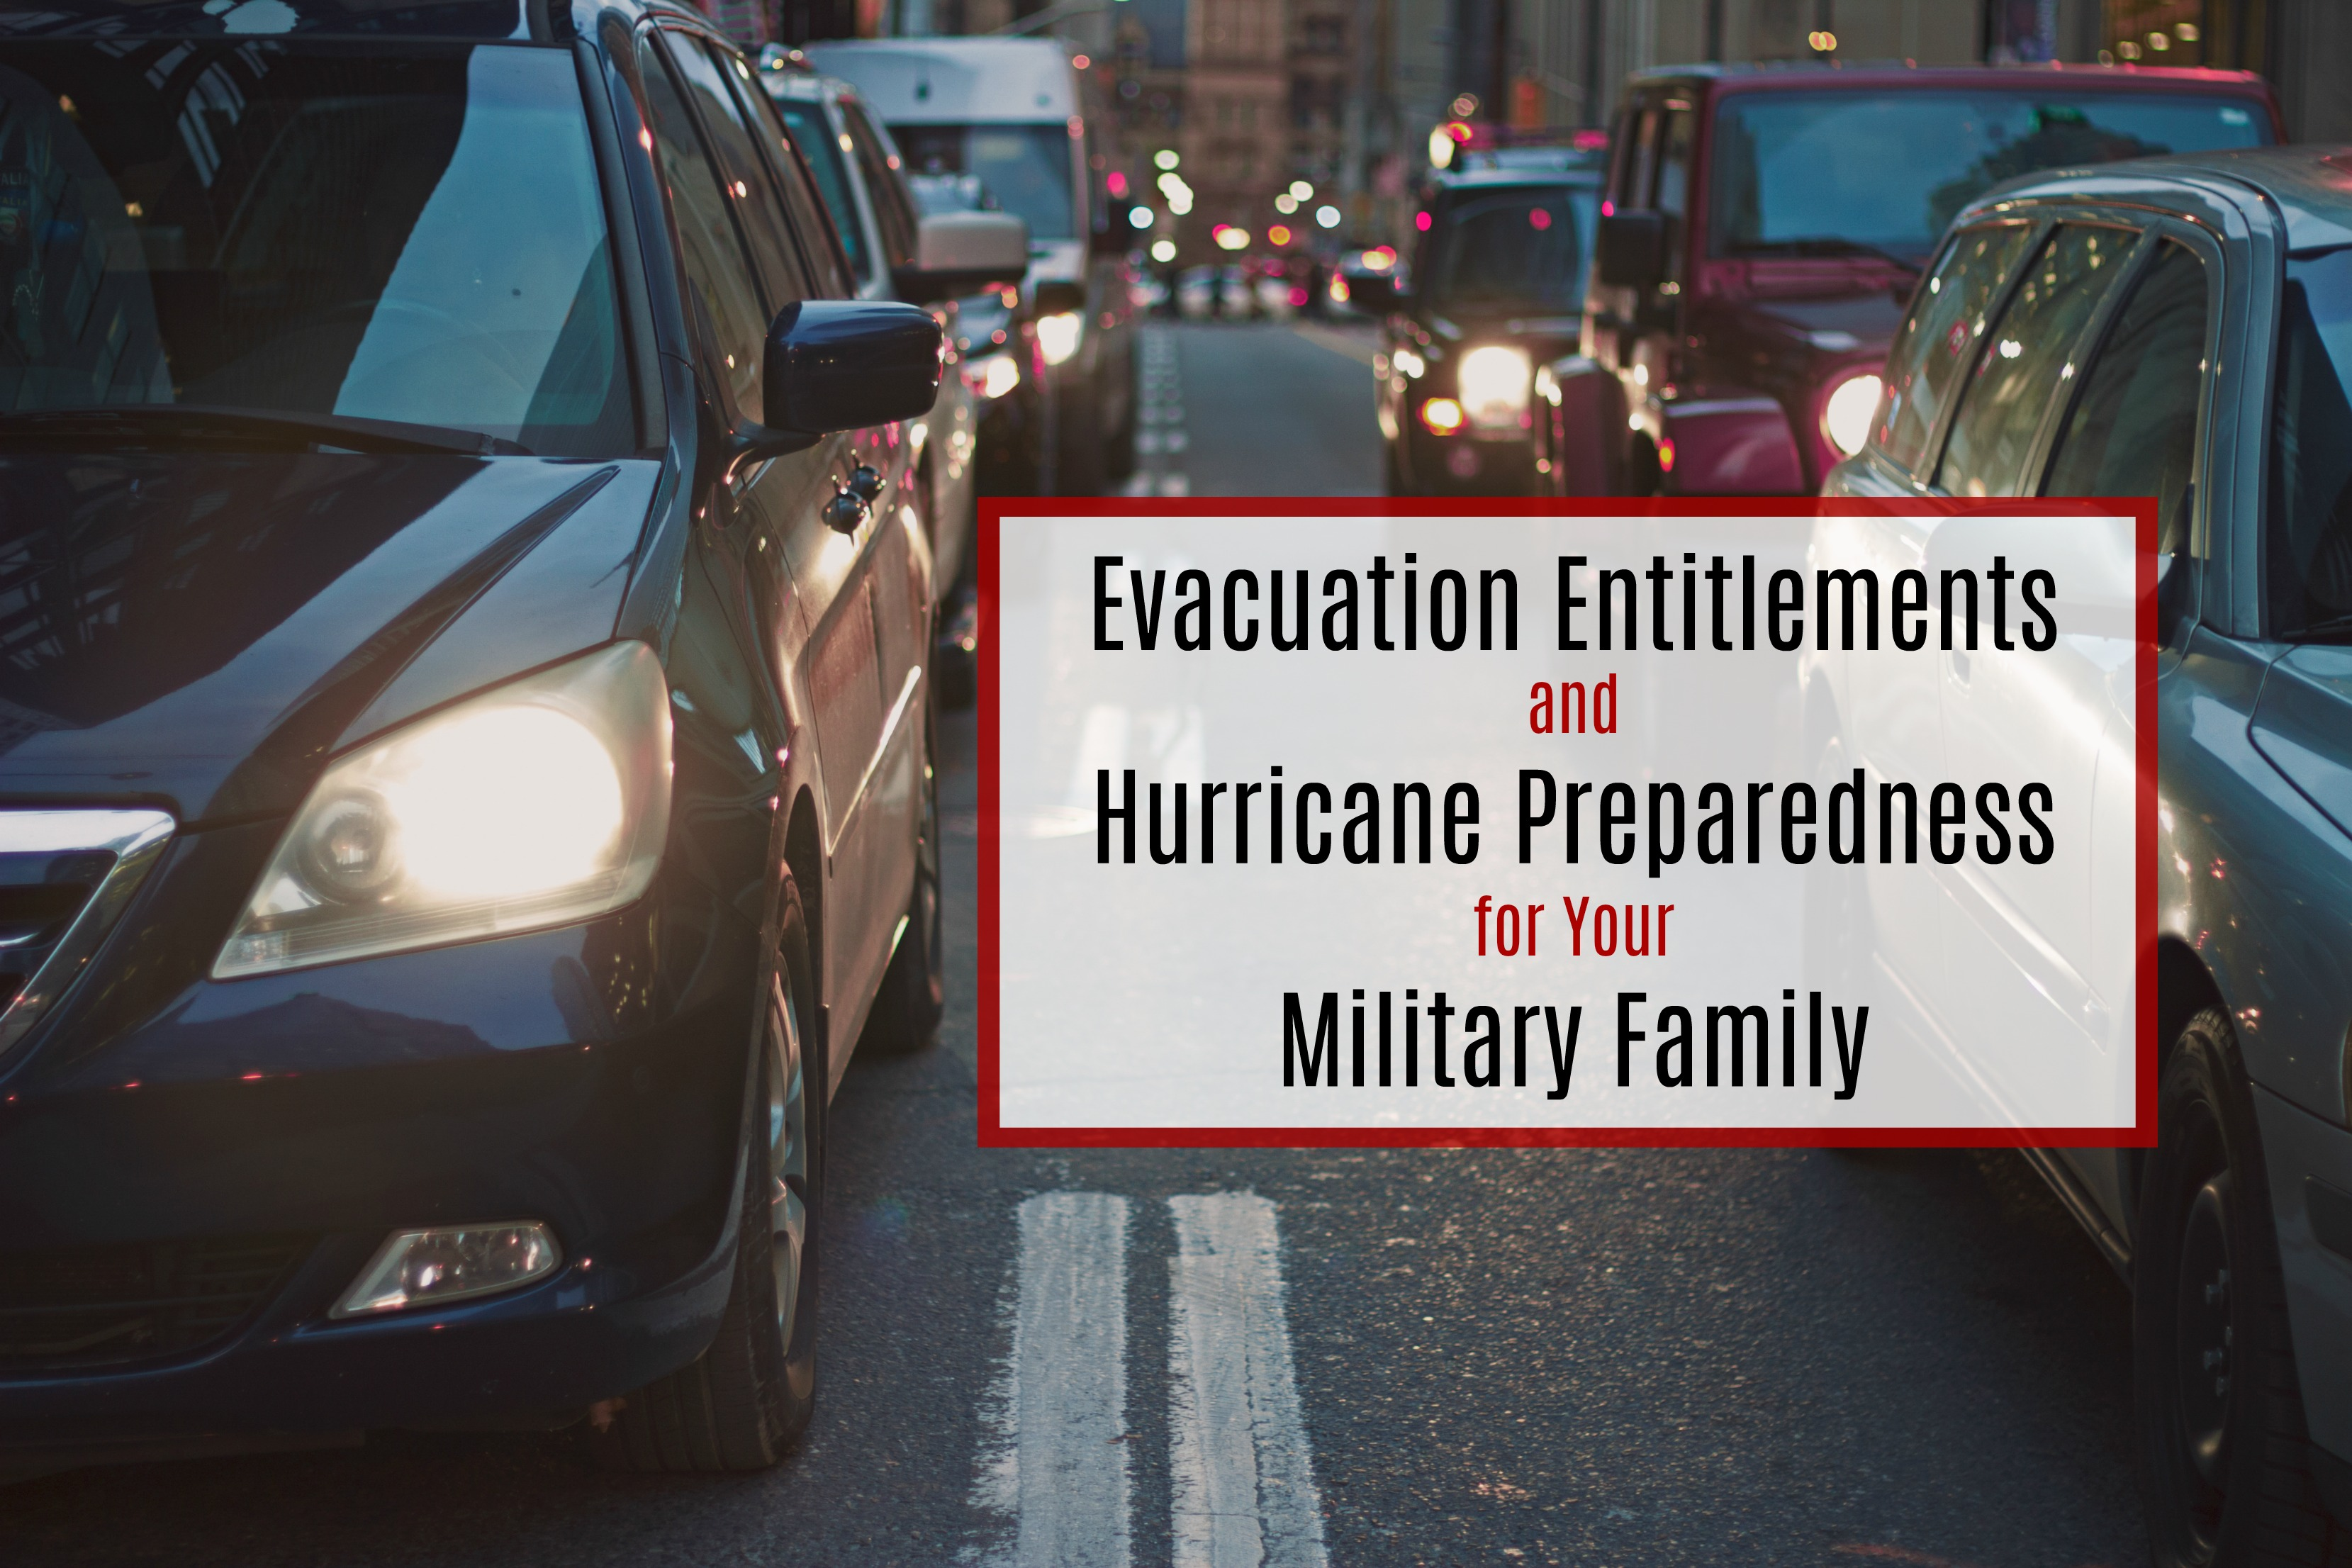 Evacuation Entitlements & Hurricane Preparedness for Your Military Family